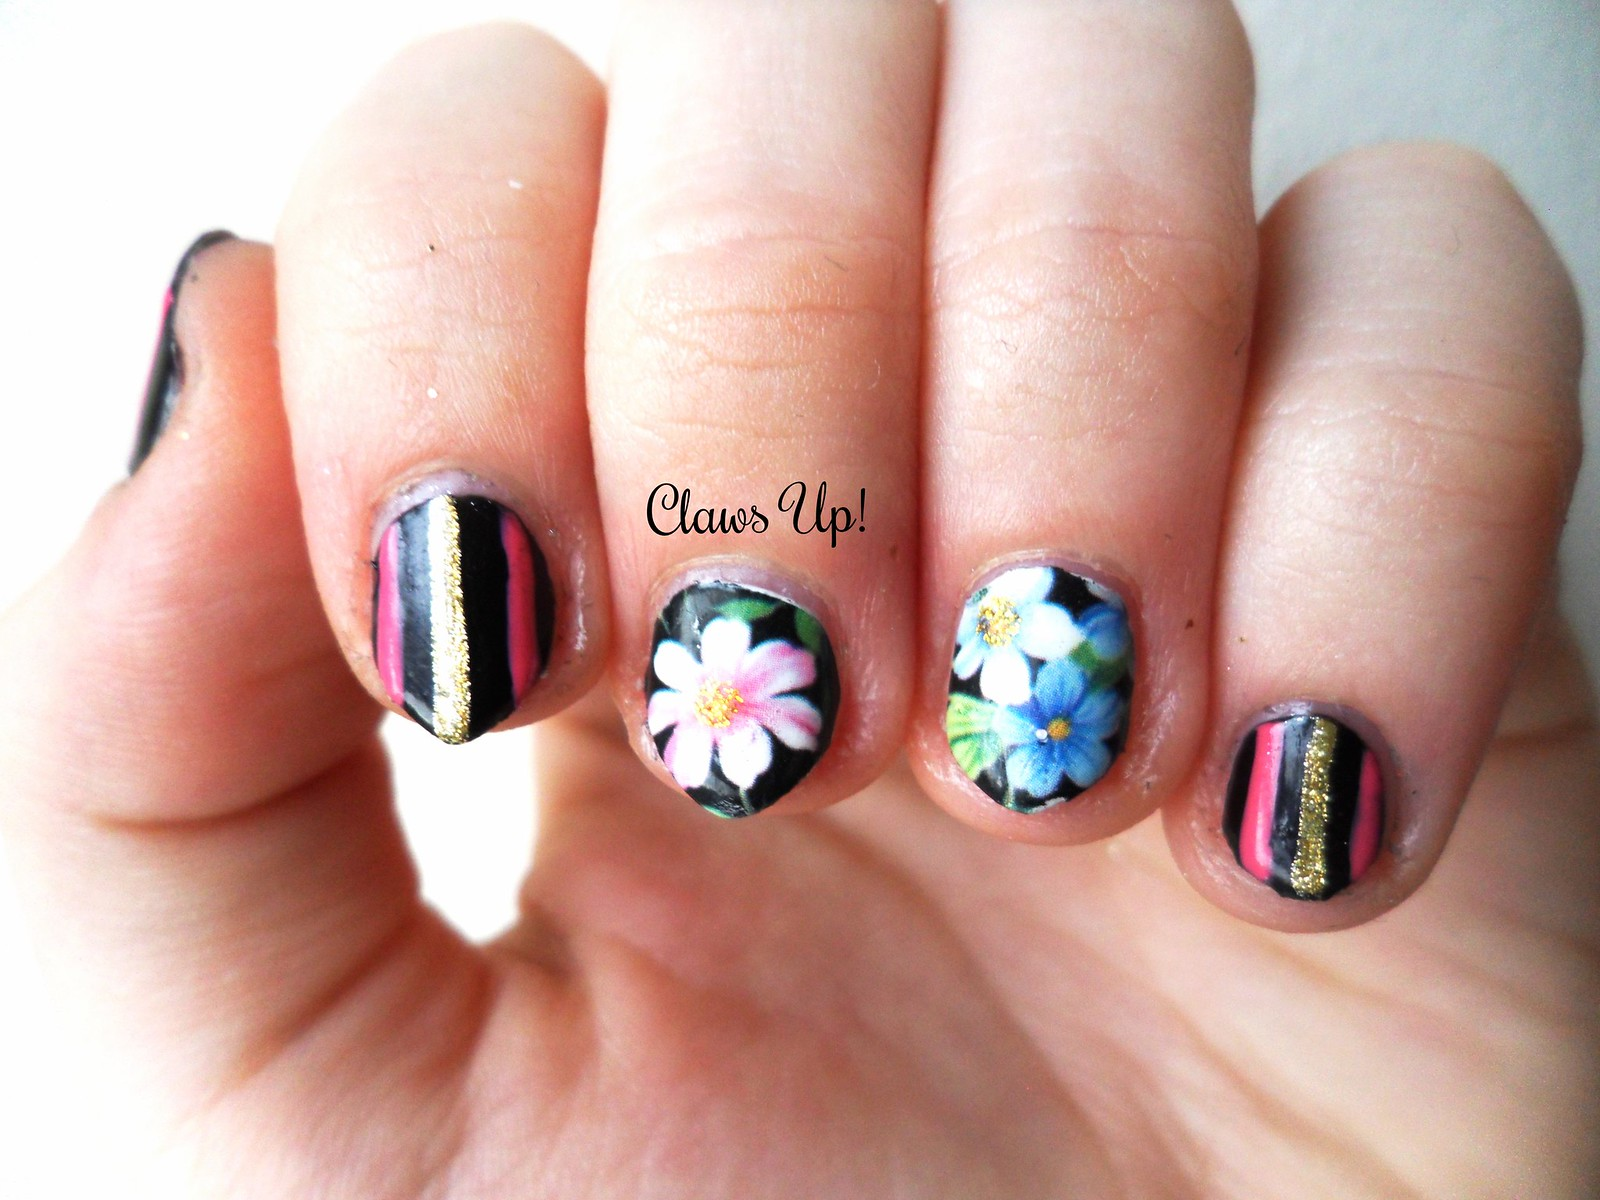 Born pretty store multicolor floral full sheet nail art decals 10% coupon code JACG10